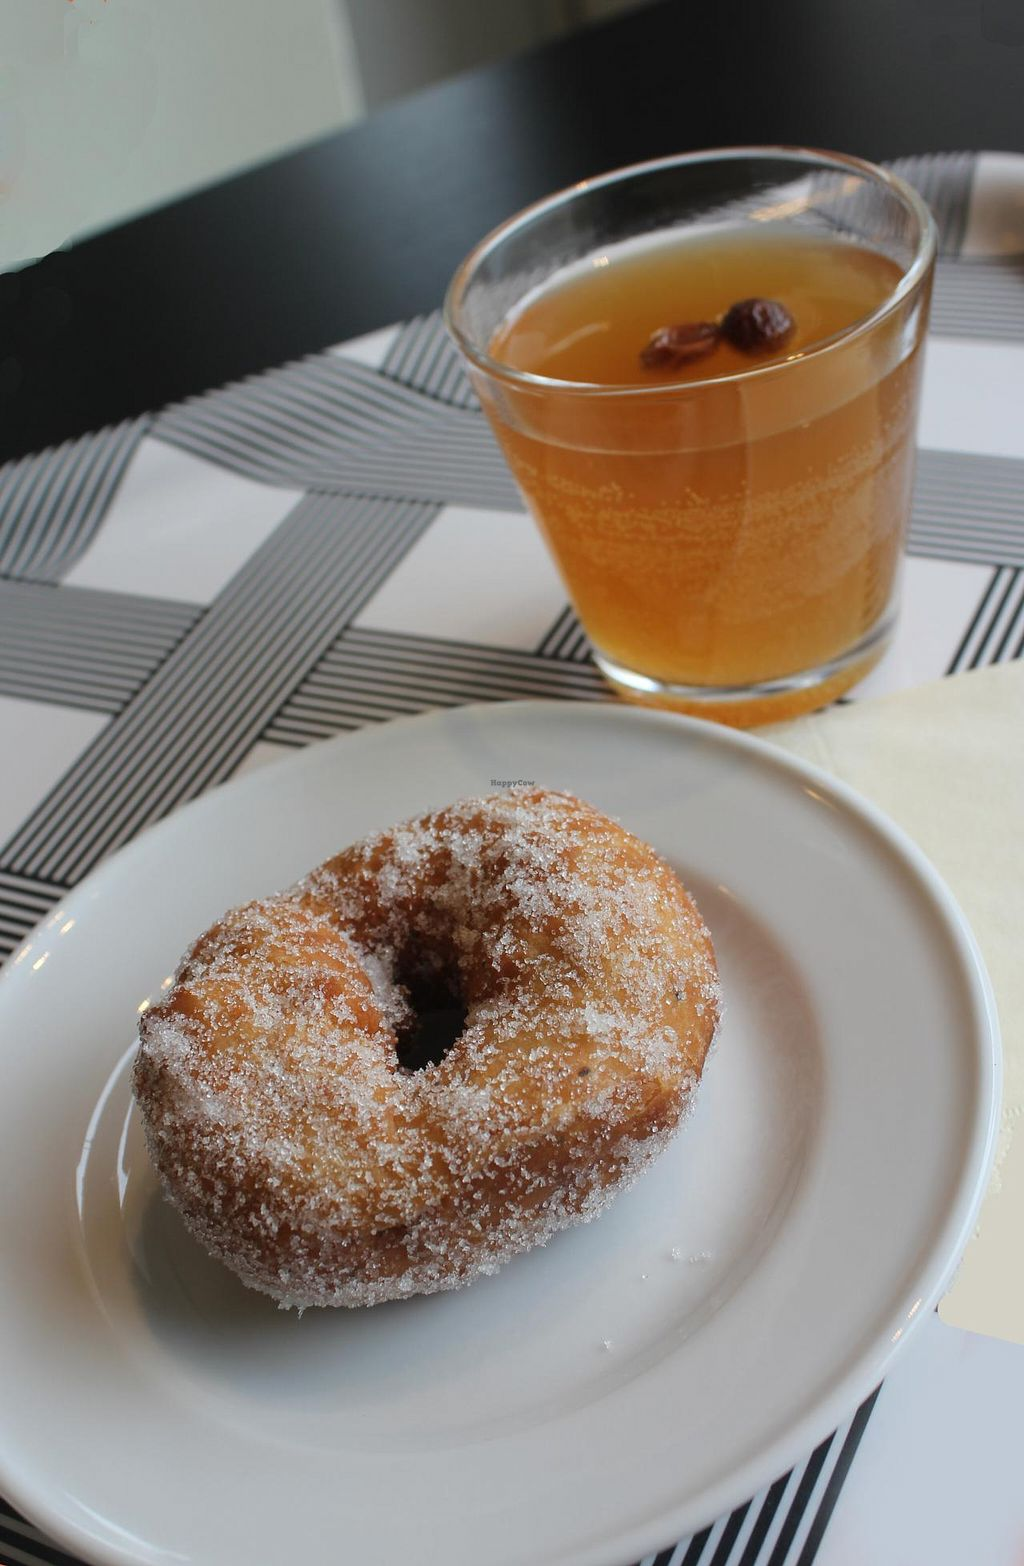 """Photo of CLOSED: Cafe 98  by <a href=""""/members/profile/Heike.St"""">Heike.St</a> <br/>Sima (kind of mead, alcohol free) and munkki (Finnish doughnut) on Vappu, 1. May <br/> May 11, 2015  - <a href='/contact/abuse/image/55256/101844'>Report</a>"""